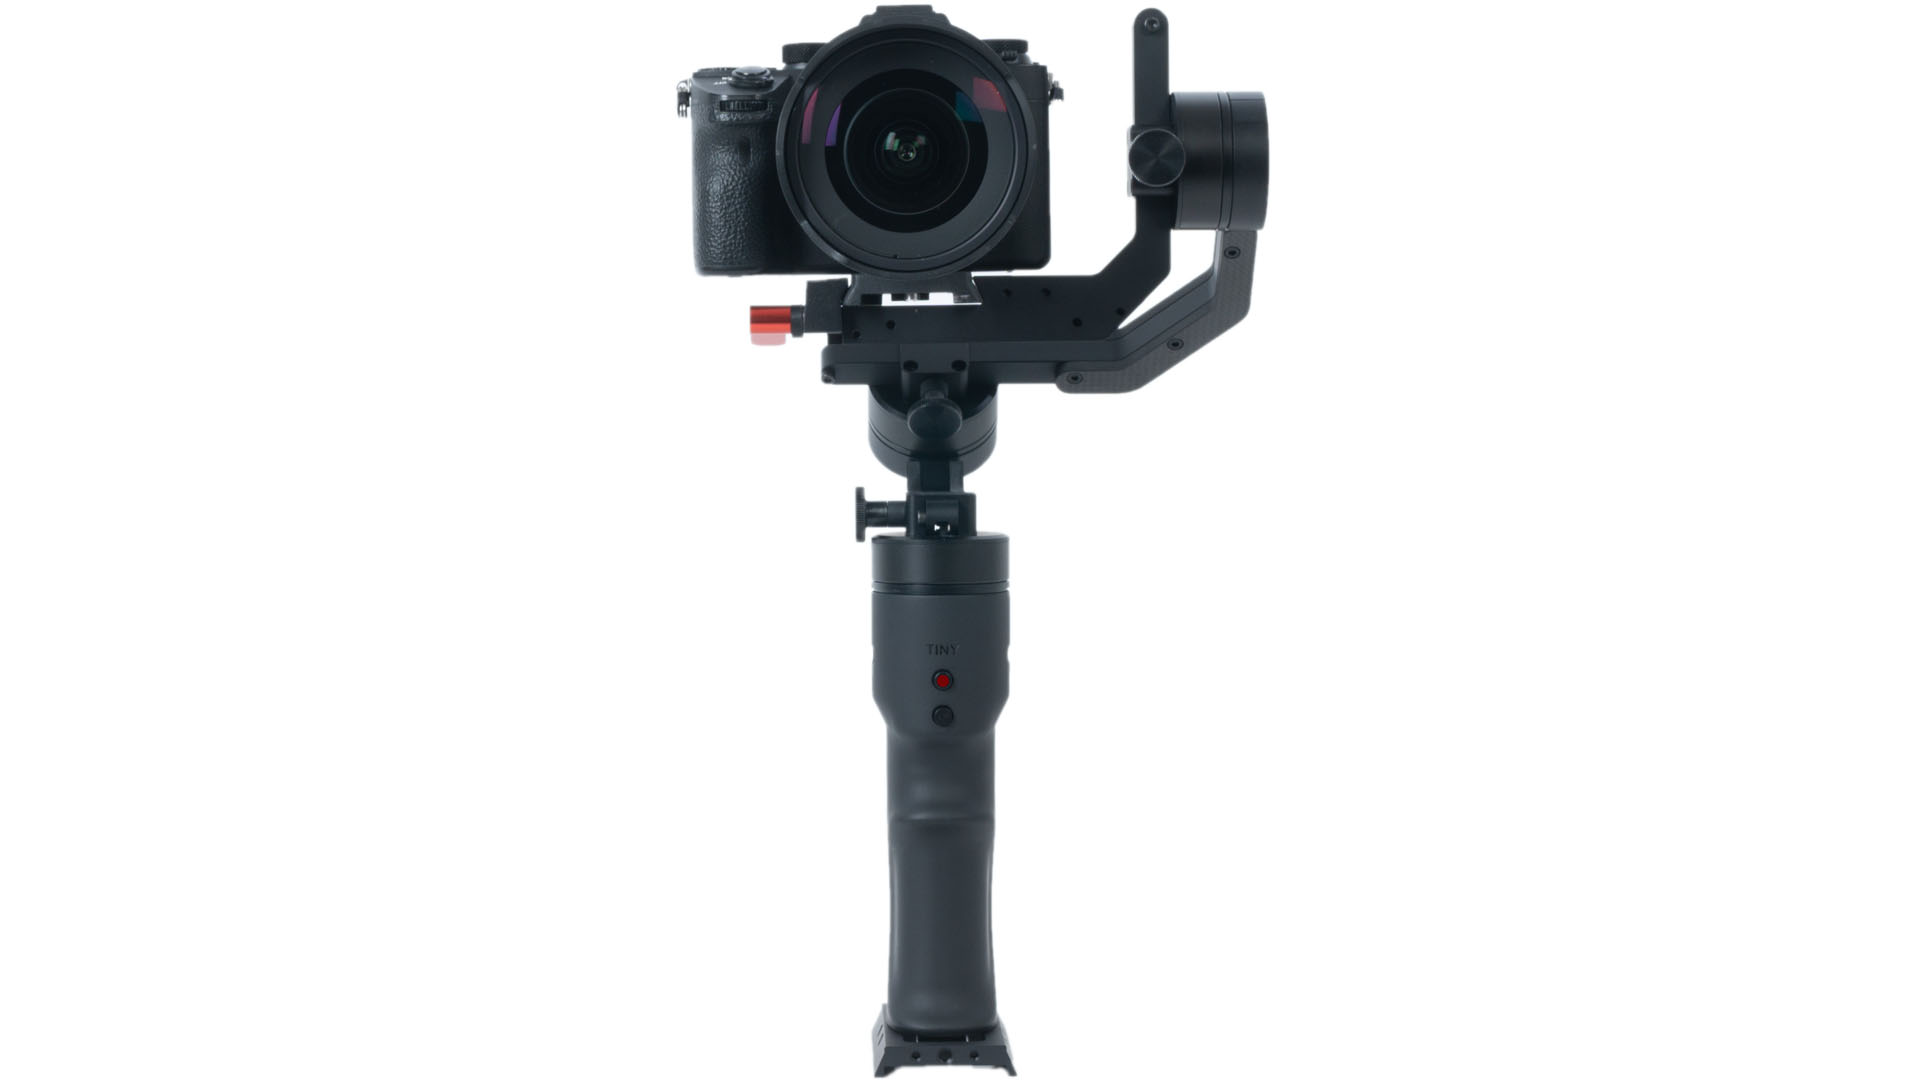 icecam gimbal tiny 3 ultravision 3